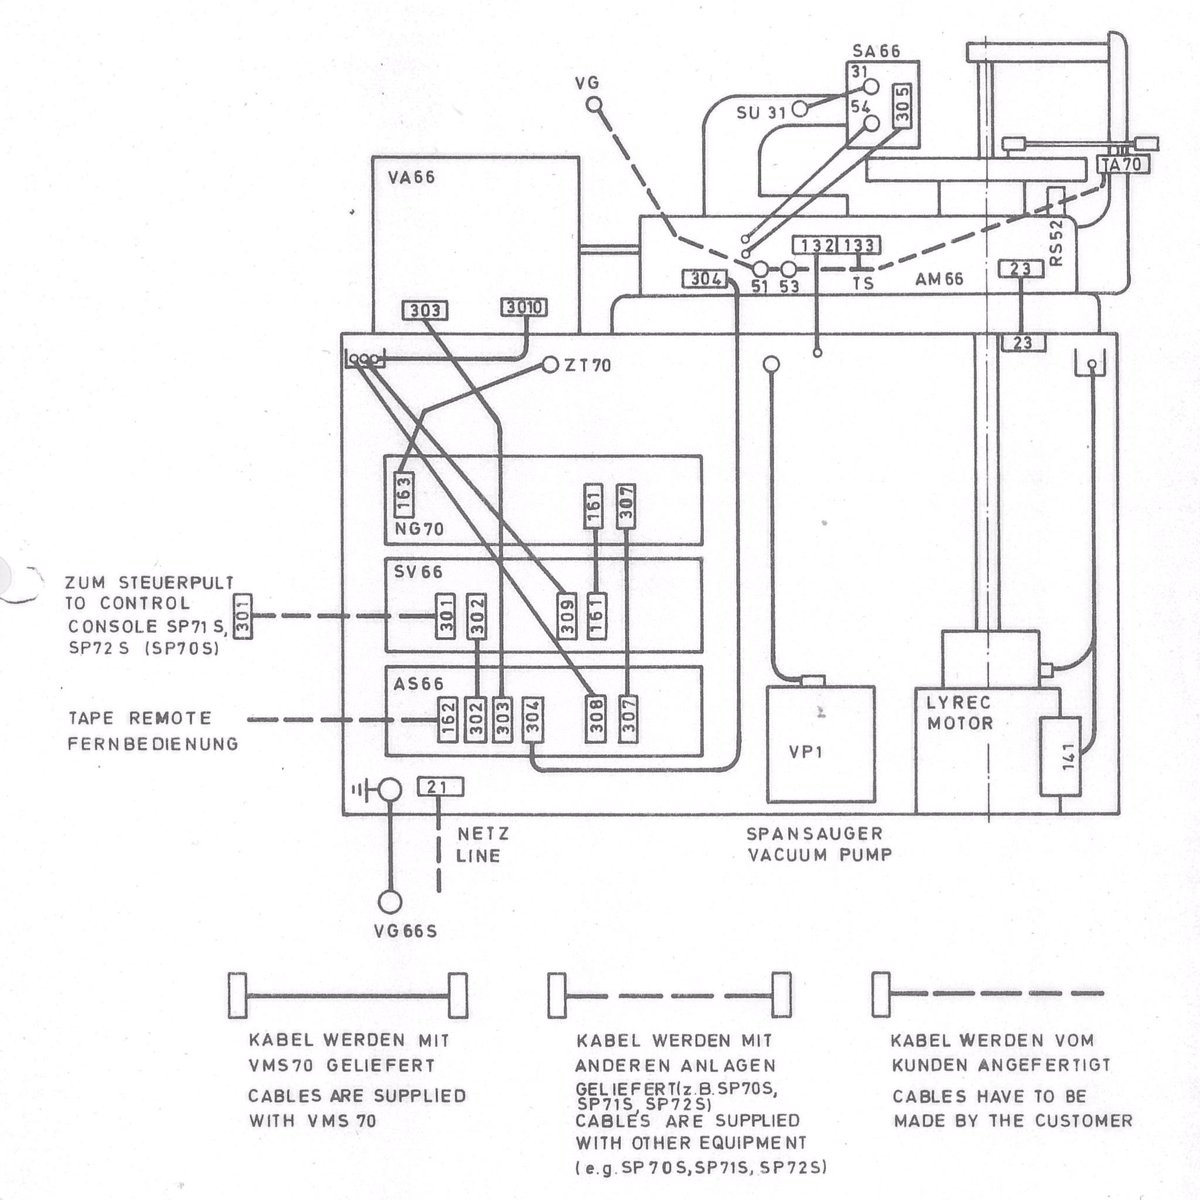 700r4 tcc wiring diagram